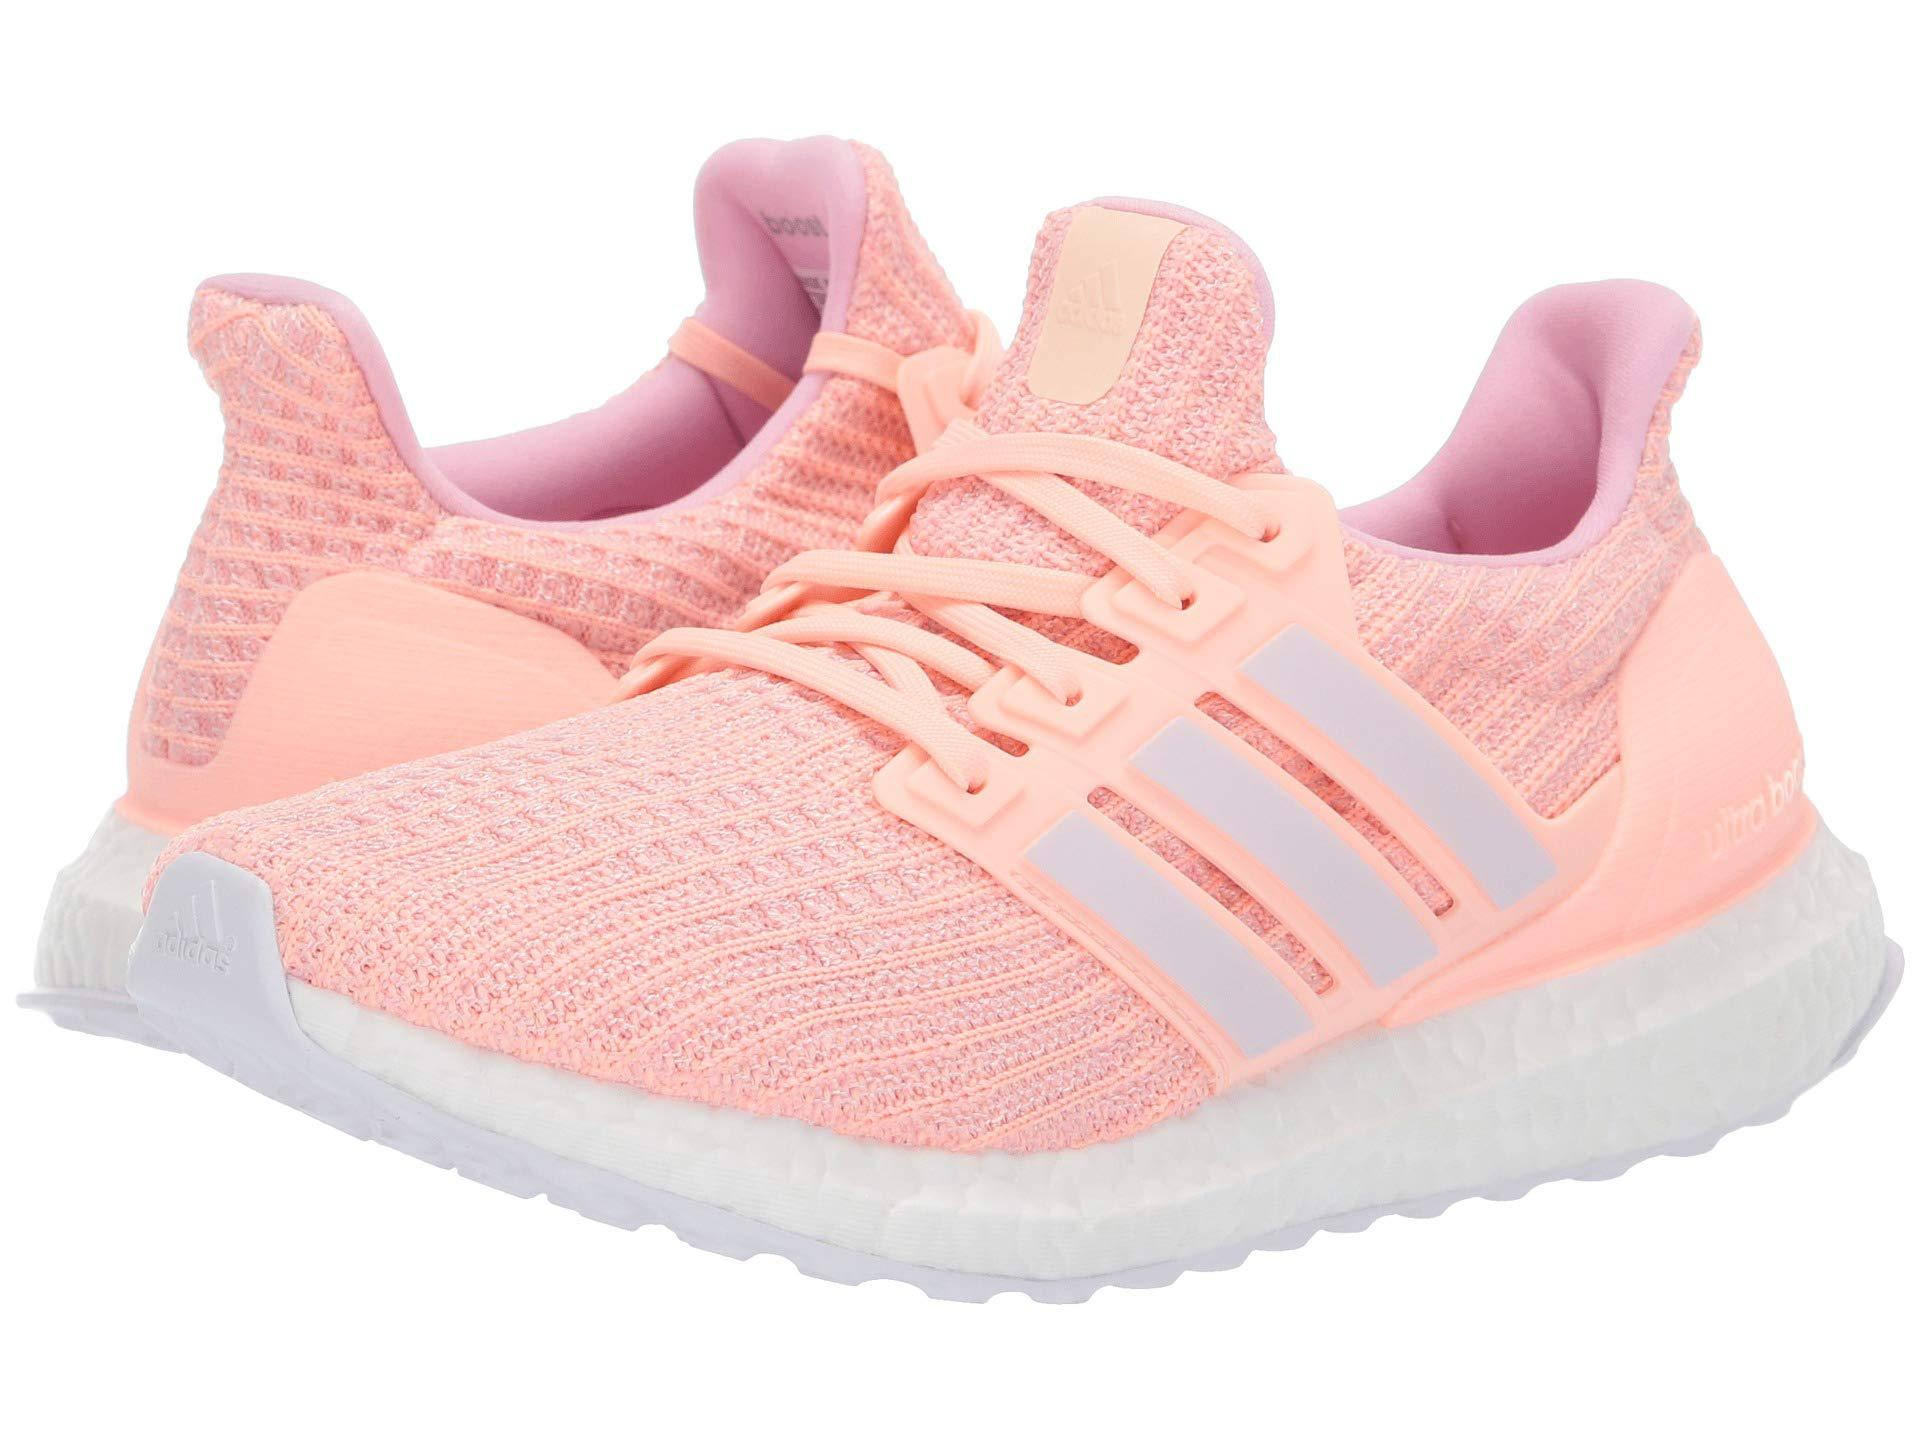 competitive price 47545 cac7a Adidas Originals - Pink Ultraboost (footwear White footwear White footwear  White) Women s. View fullscreen